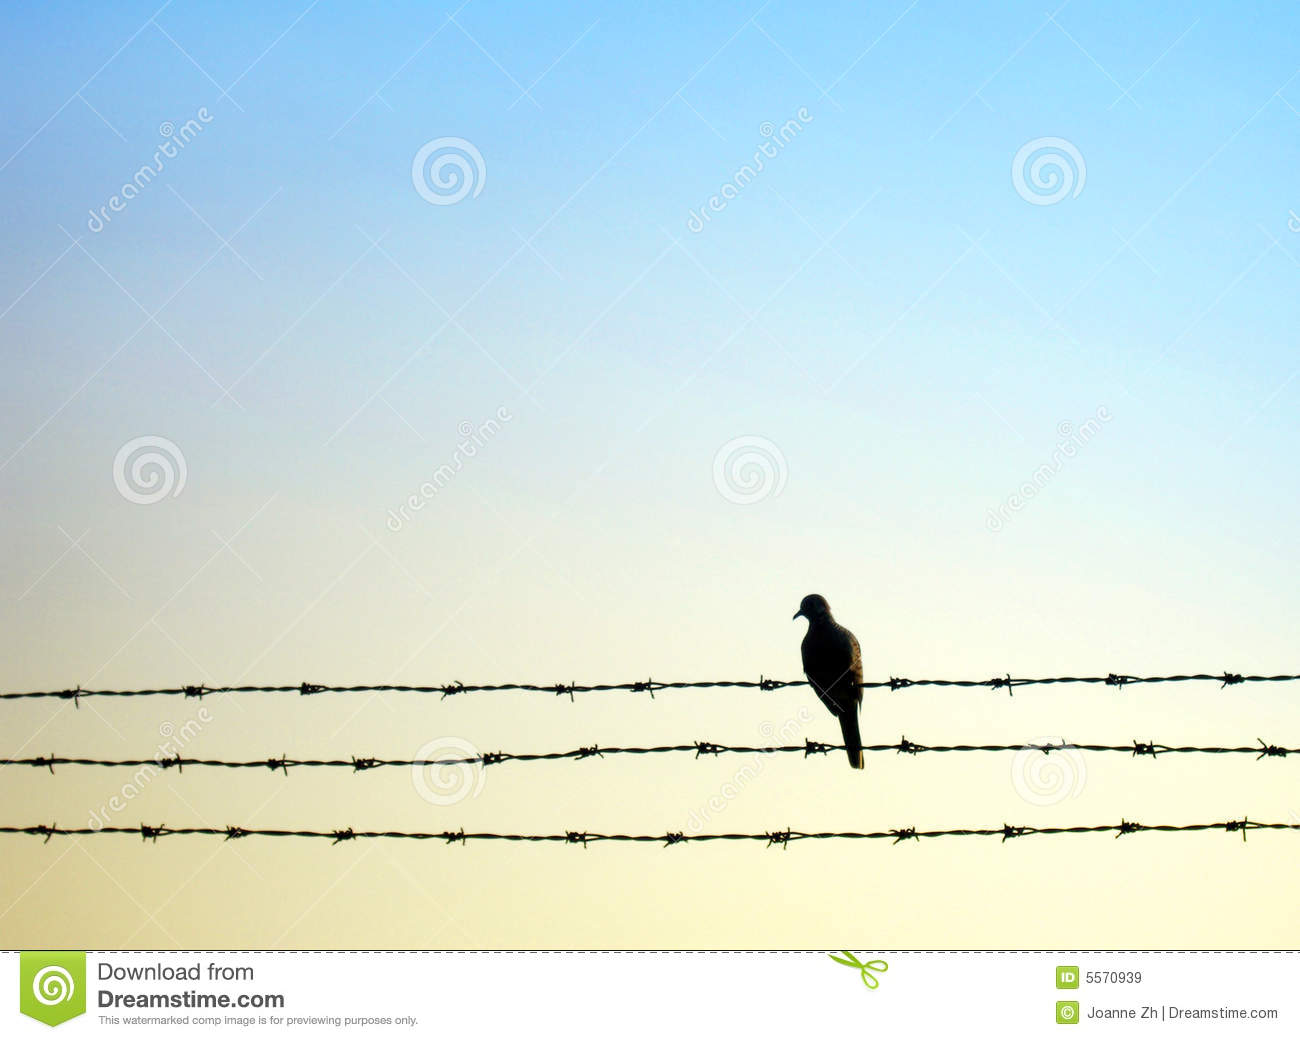 Dove bird on barb wire